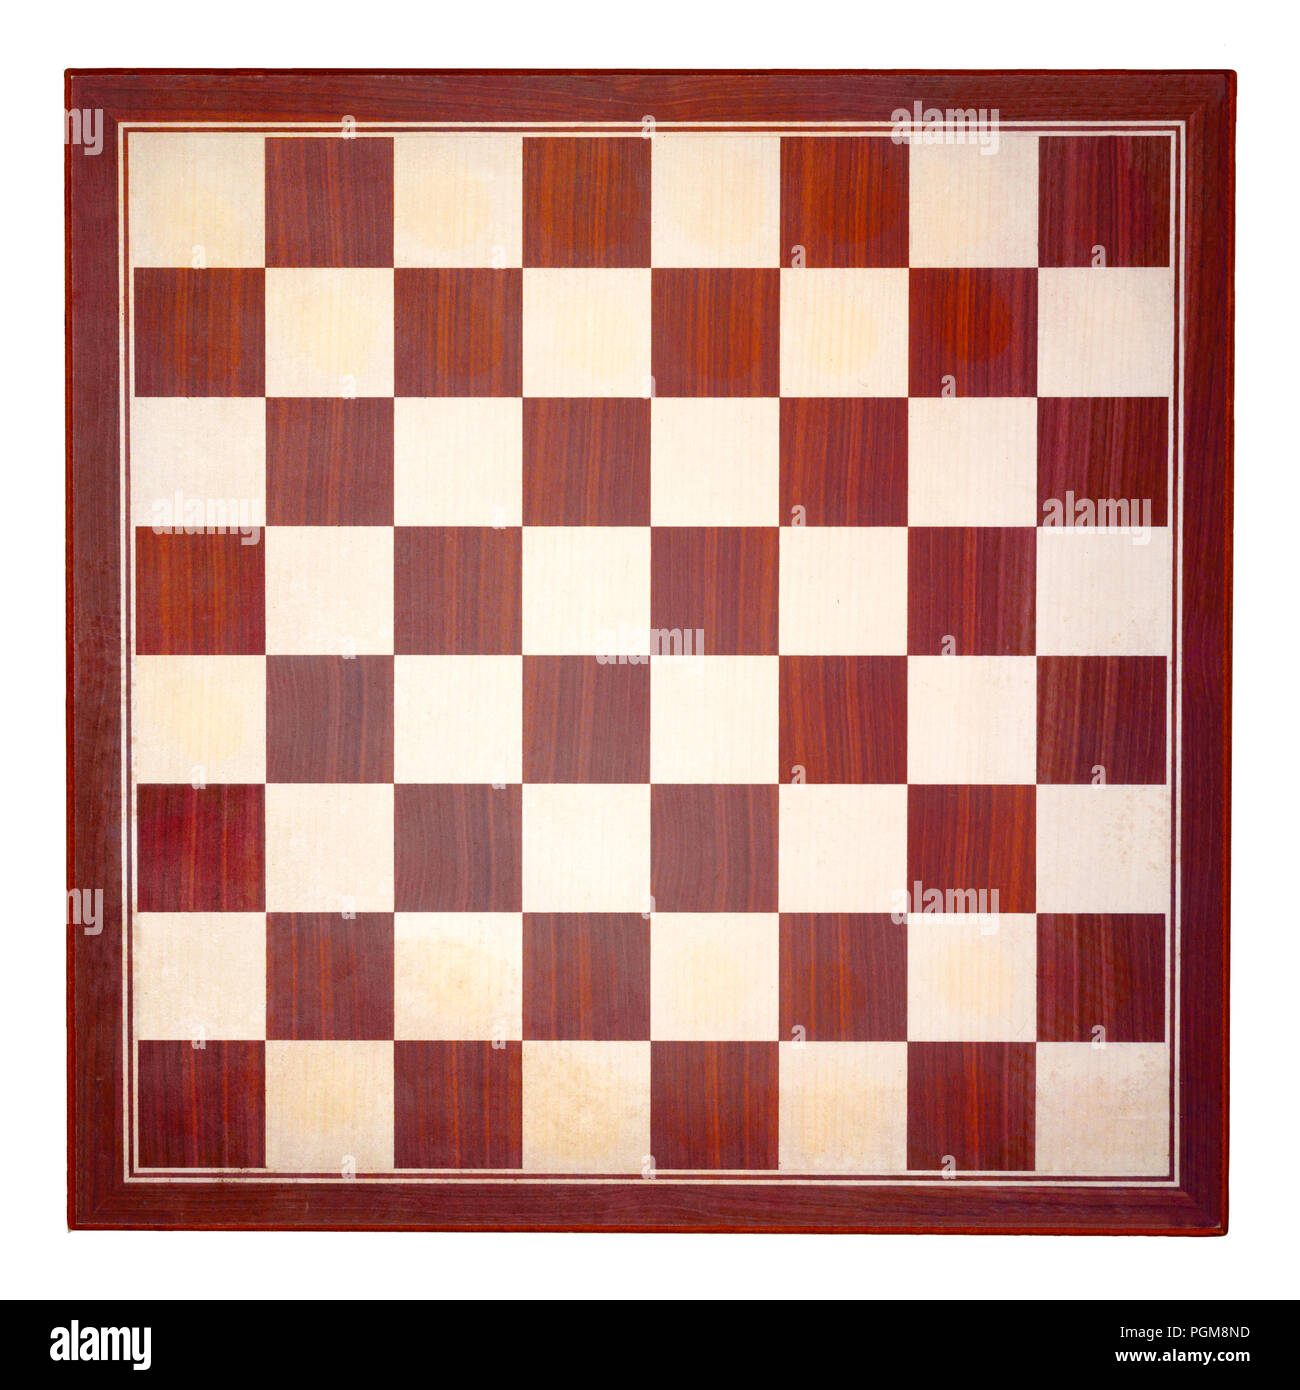 top view of brown and tan wooden chessboard on white square background - Stock Image